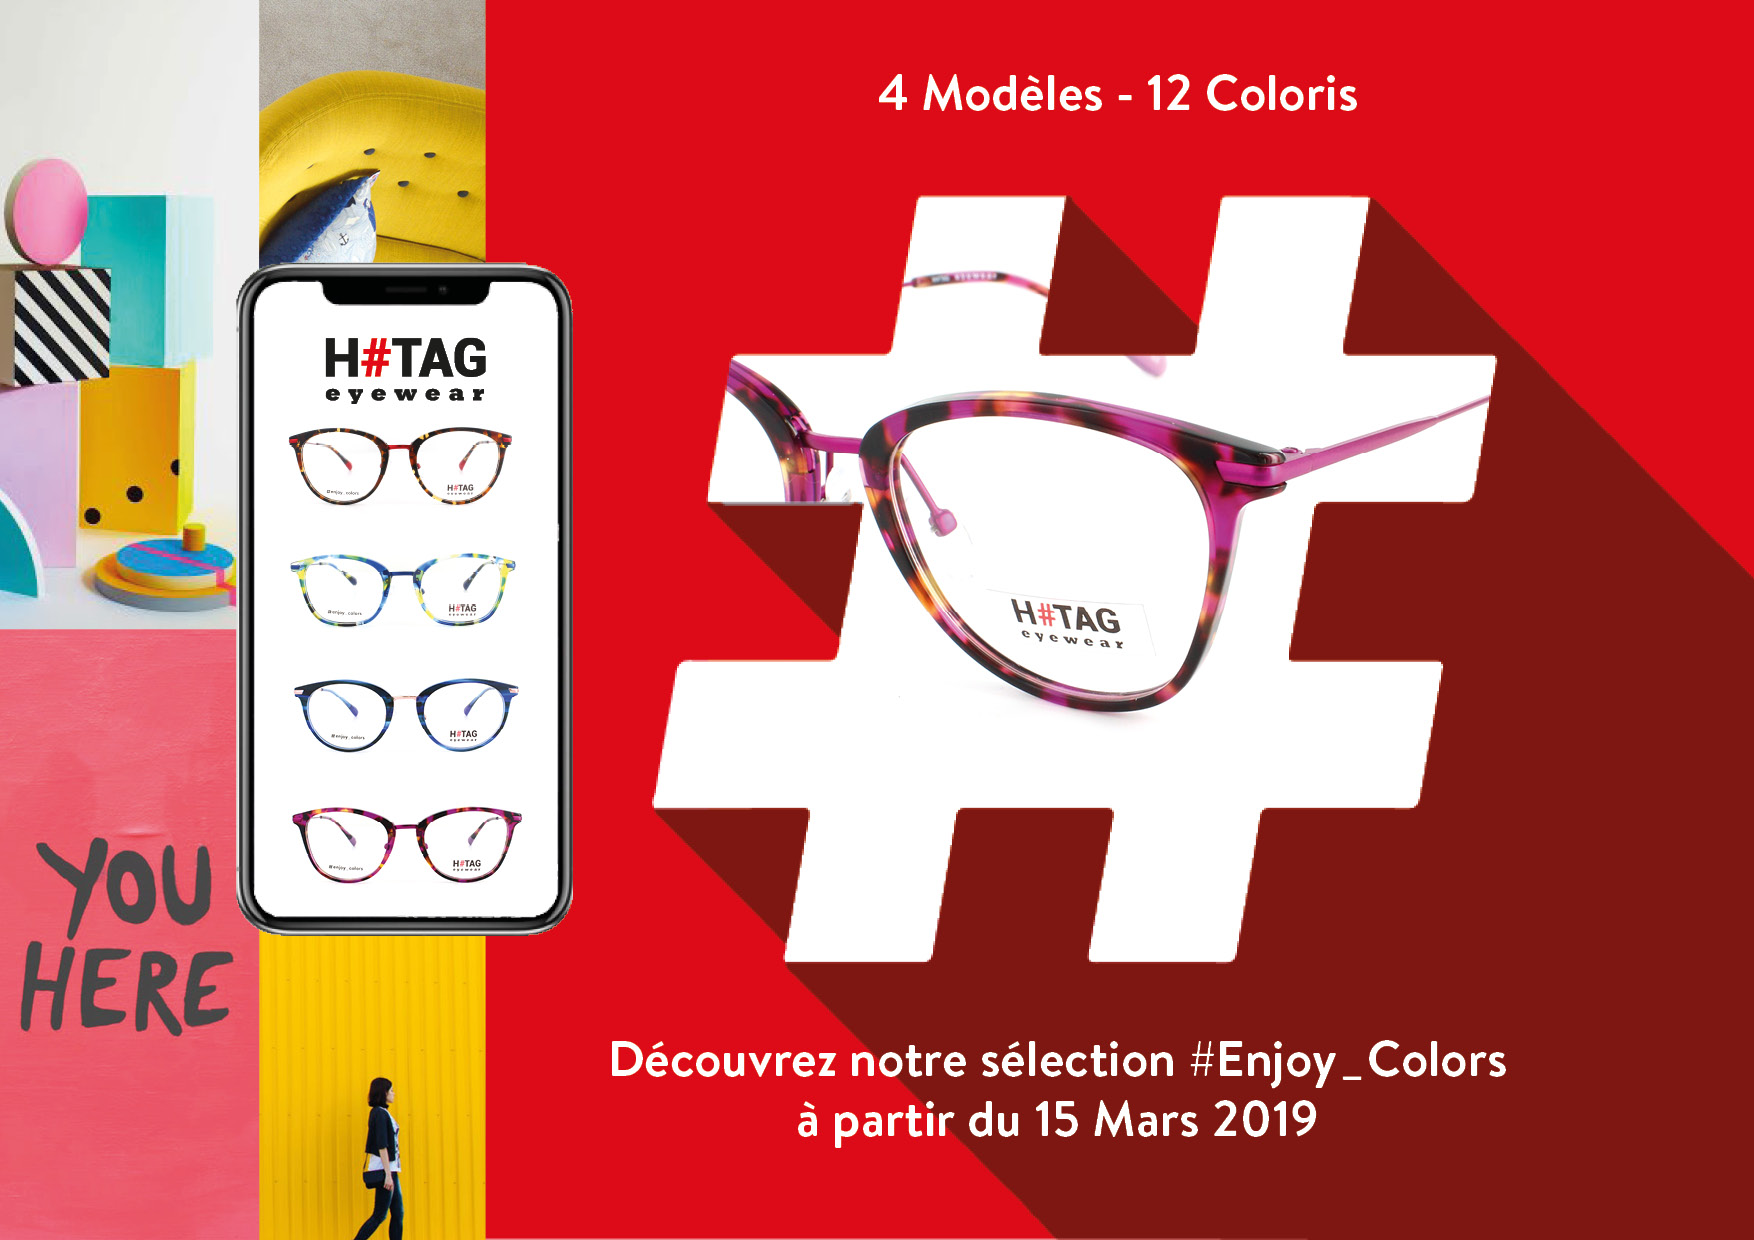 Newsletter #Enjoy_Colors mars 2019